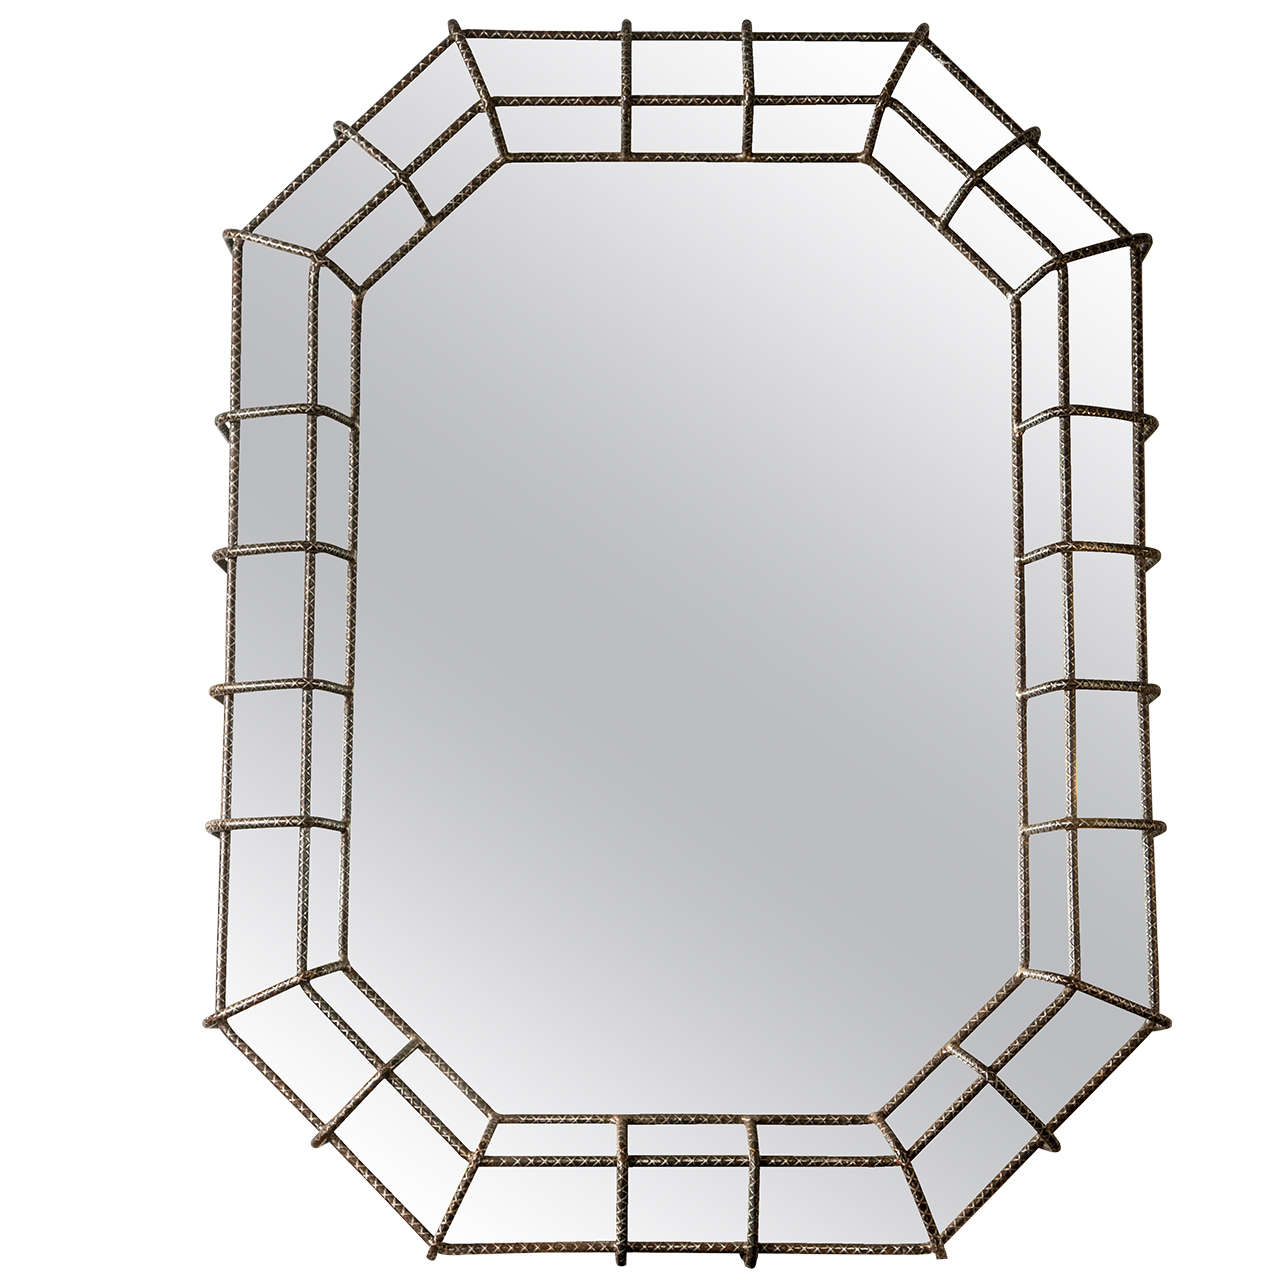 Mirror in Wire Metal Frame at 1stdibs